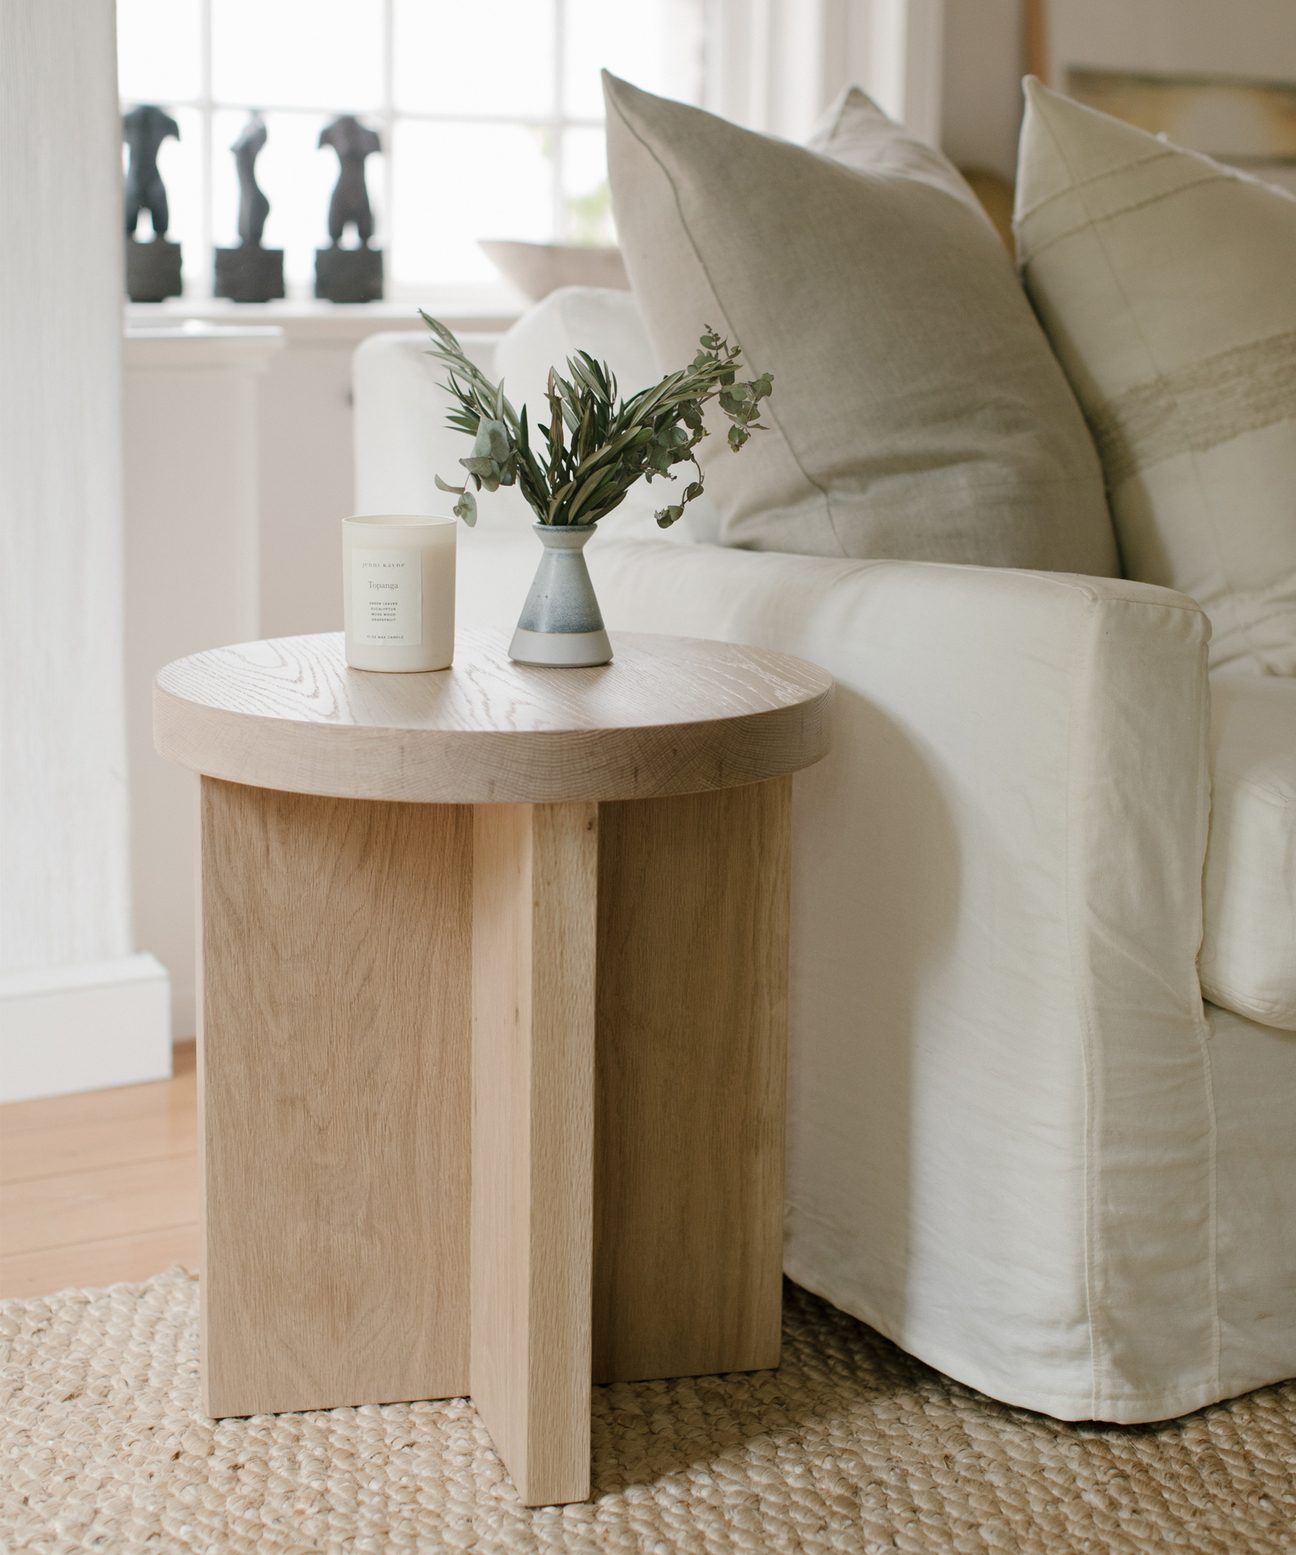 Small Oak Side Table Natural Jenni Kayne In 2020 Oak Side Table Living Room Side Table Living Room End Tables